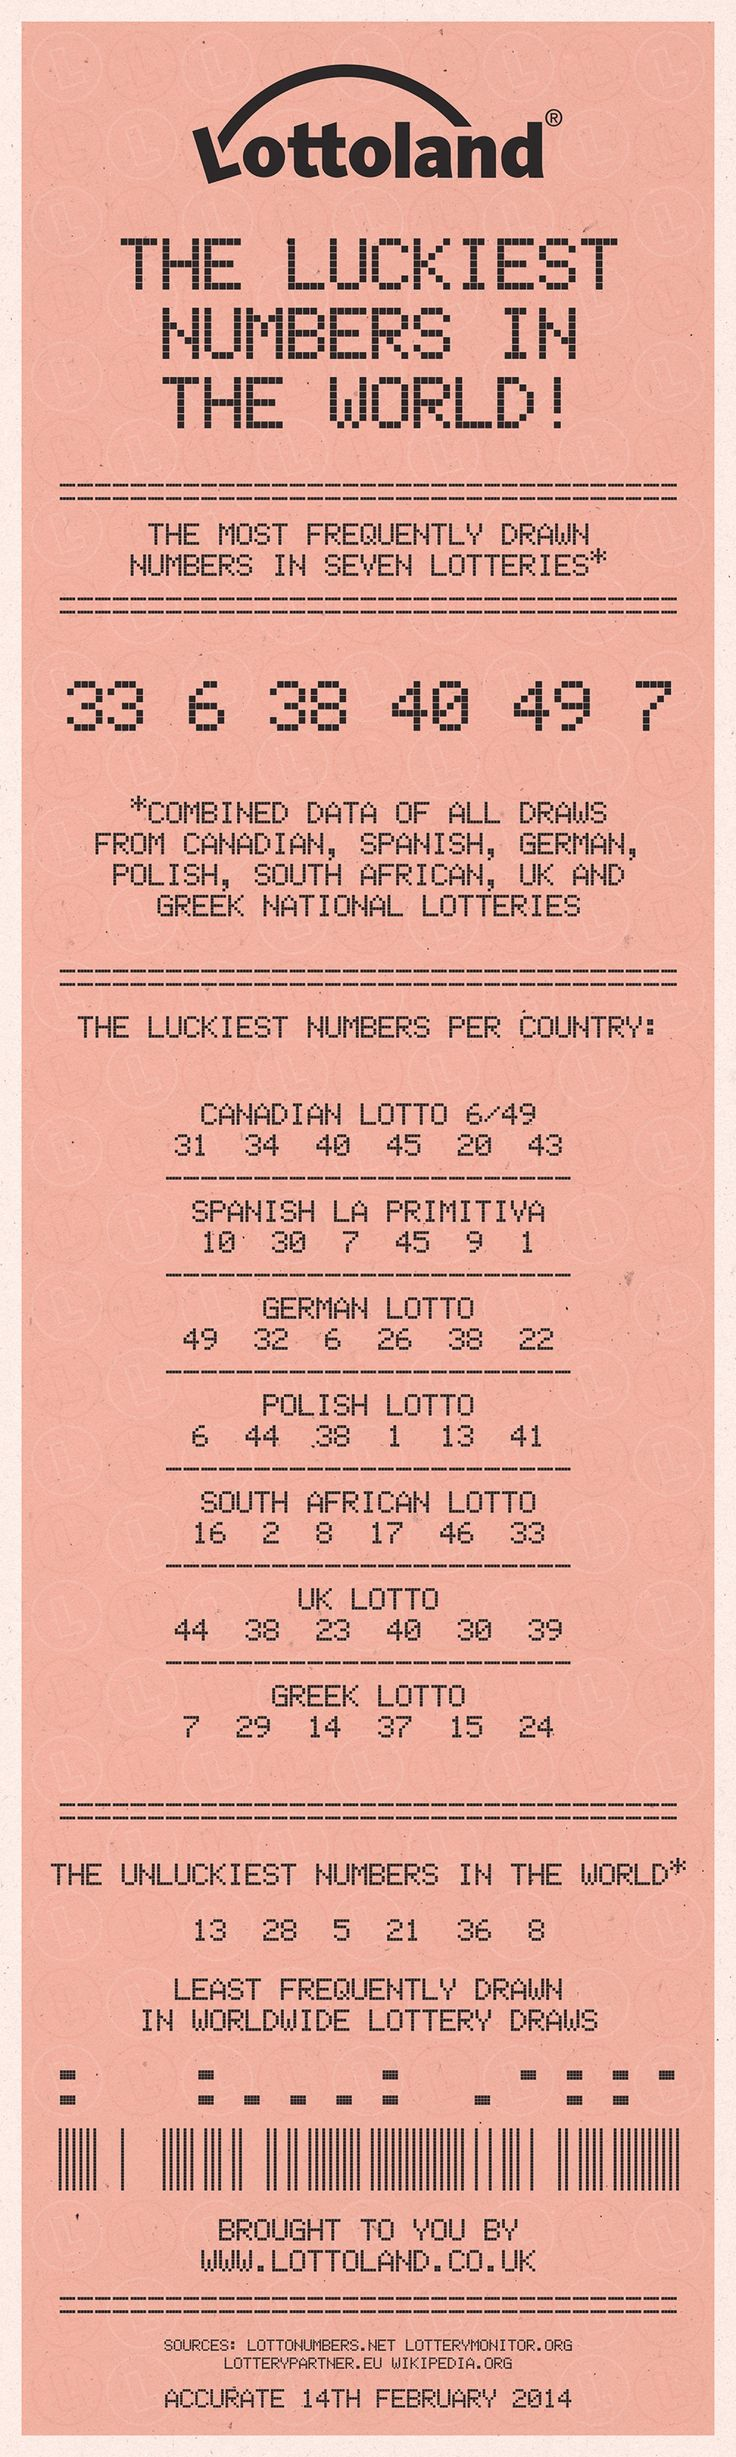 The Luckiest Numbers in the World | Earthly Mission (to Extract the Juice of the Internet)